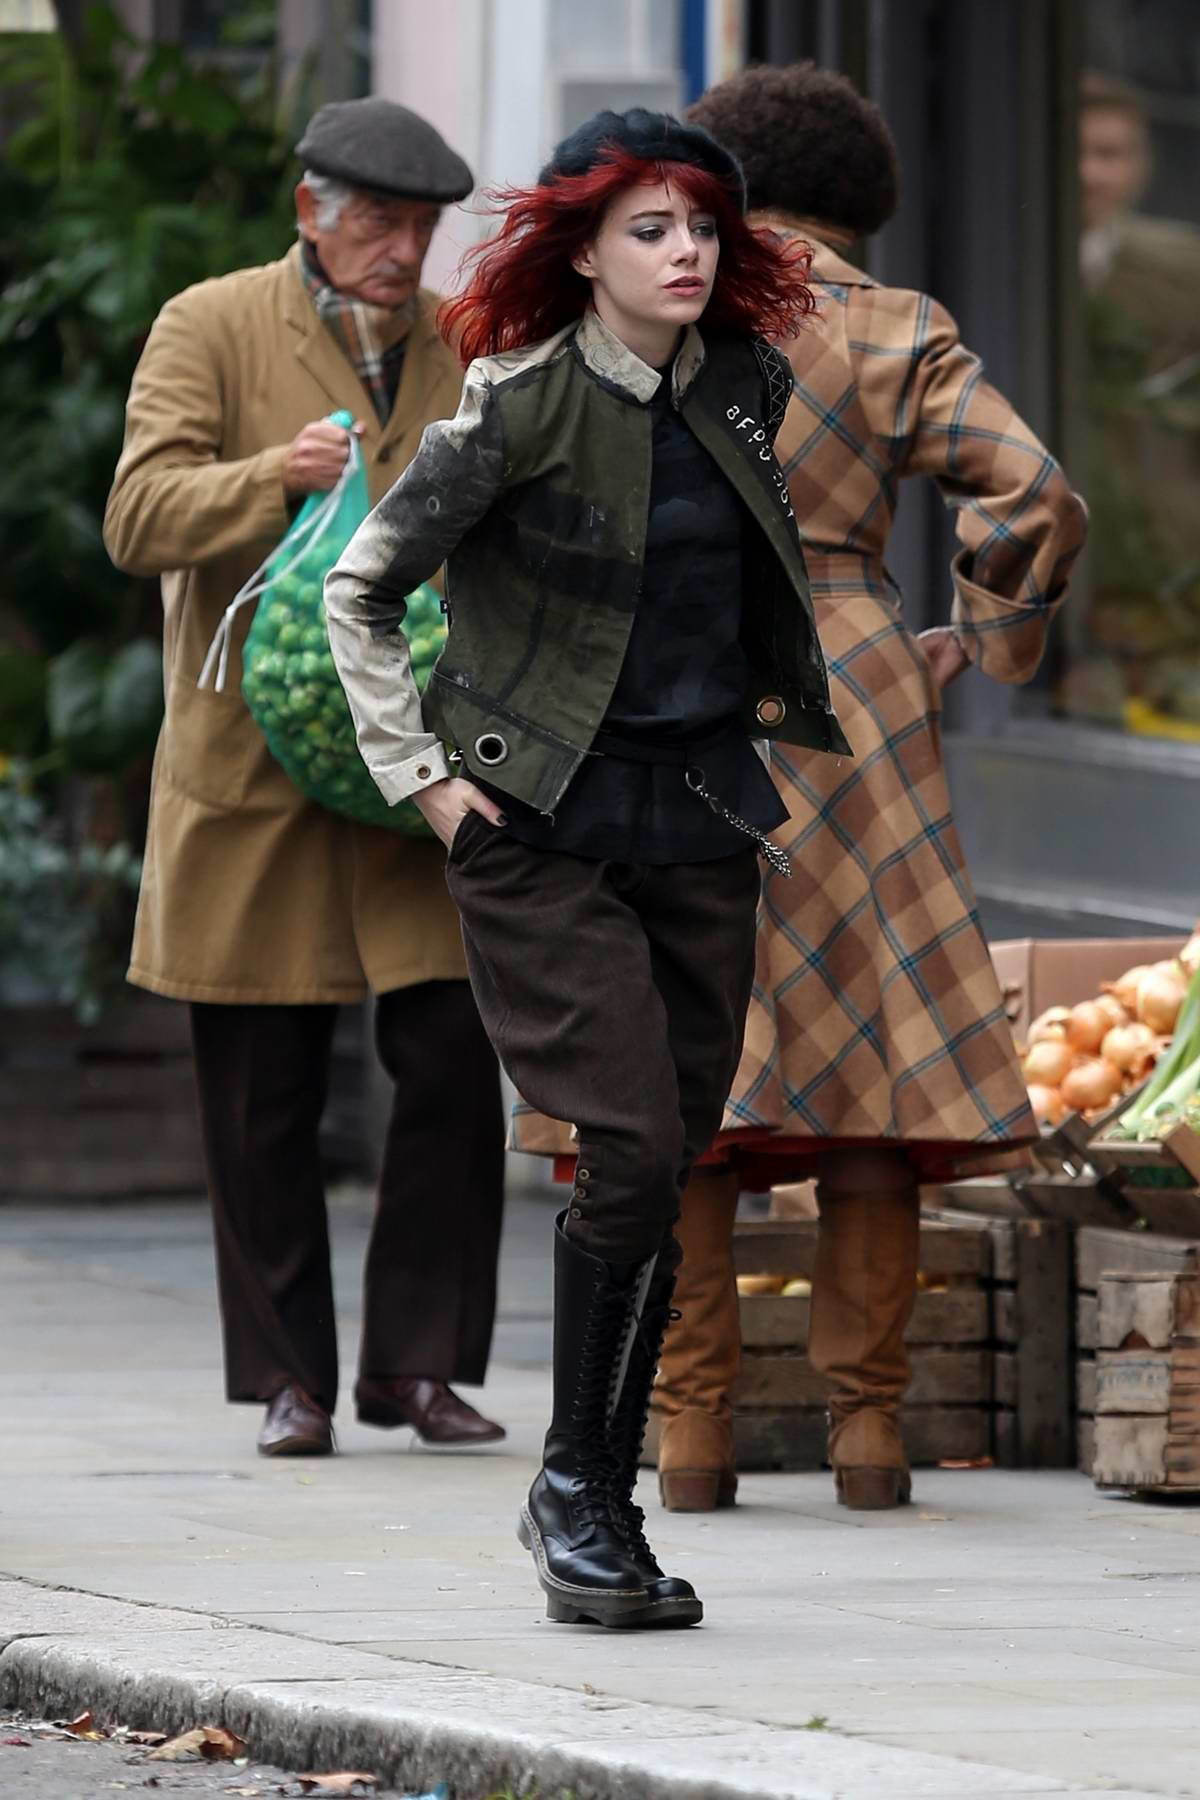 Emma Stone spotted while filming Disney's 'Cruella' movie in London, UK